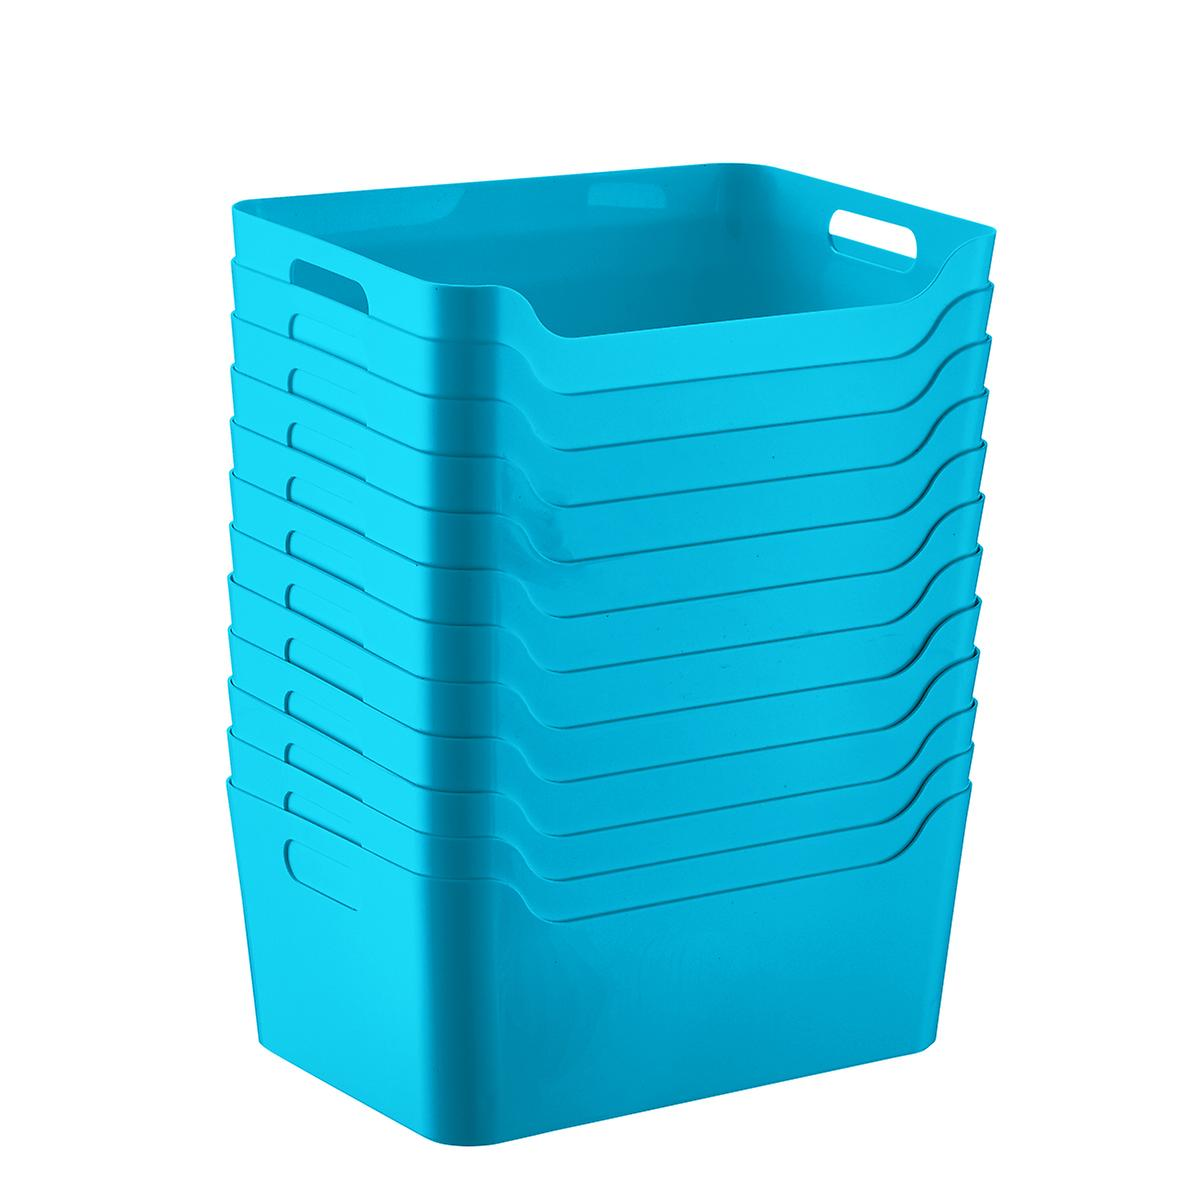 Case of 12 Peacock Plastic Storage Bins with Handles